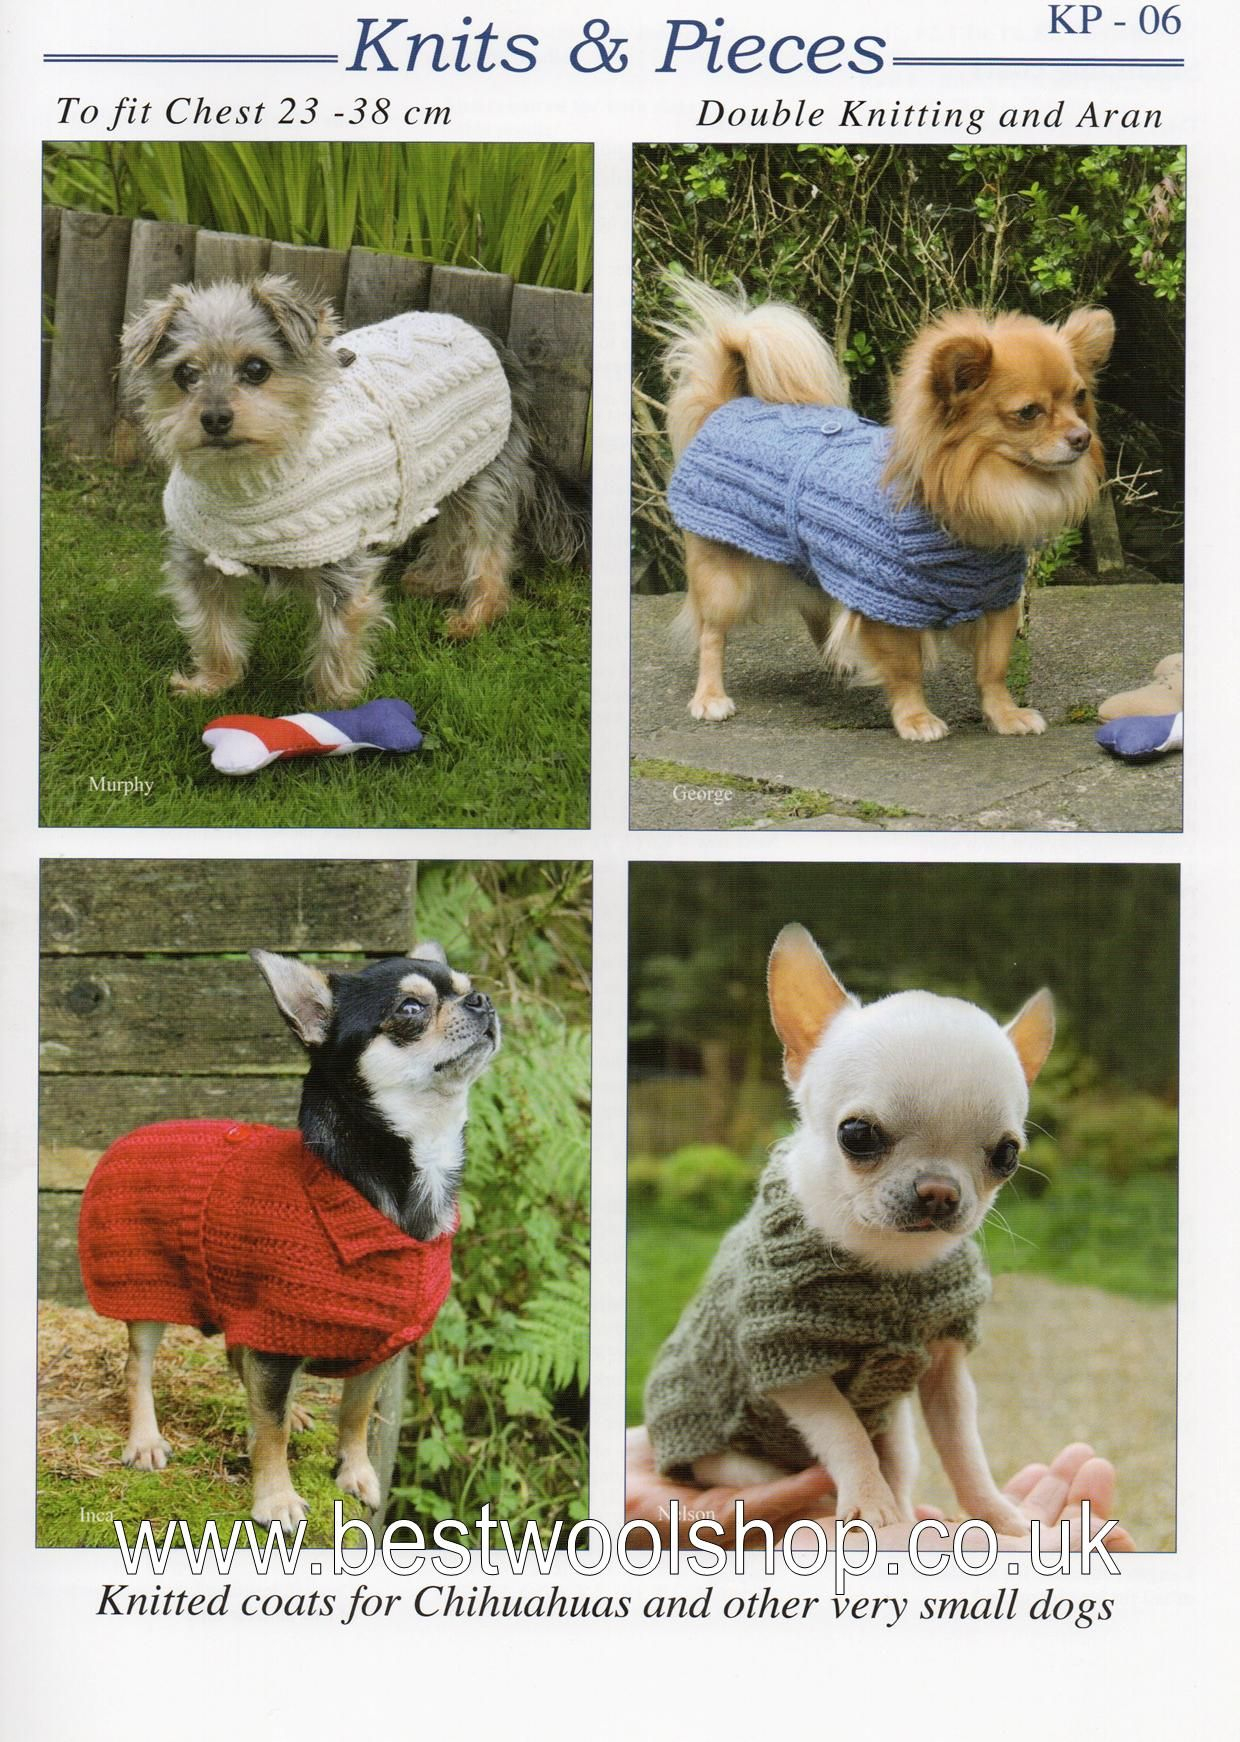 Knitted Dog Coat Pattern Kp 06 Knits Pieces Dog Coat Knitting Pattern Sandra Polley